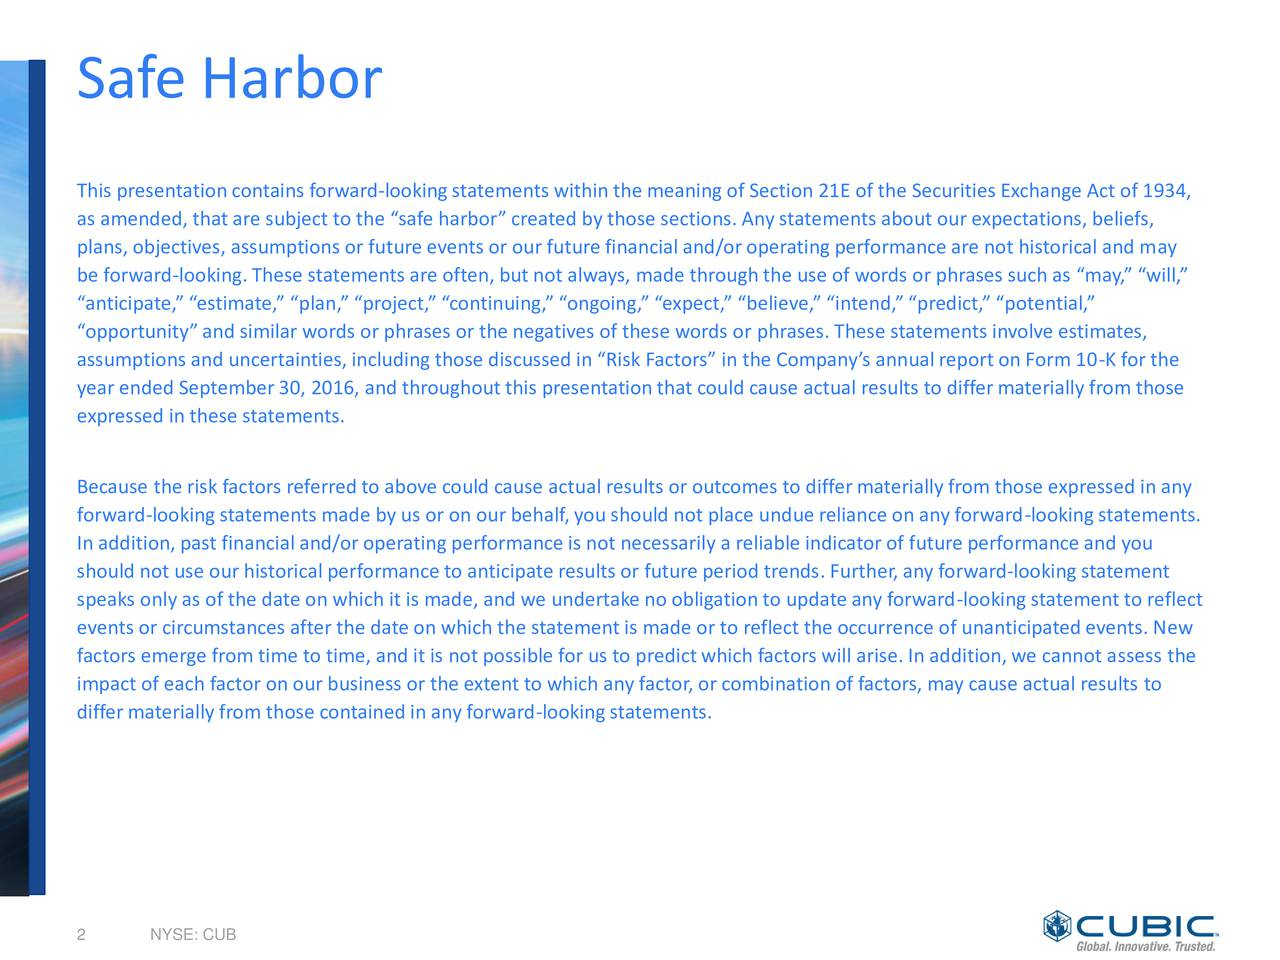 This presentation contains forward-lookingstatements within the meaning of Section 21E of the Securities Exchange Act of 1934, as amended, that are subject to the safe harbor created by those sections. Any statements about our expectations, beliefs, plans, objectives, assumptions or future events or our future financial and/or operatingperformance are not historical and may be forward-looking.These statements are often, but not always, made throughthe use of words or phrases such as may, will, anticipate, estimate, plan, project, continuing, ongoing, expect, believe, intend,predict, potential, opportunityand similar words or phrases or the negatives of these words or phrases. These statements involve estimates, assumptions and uncertainties, includingthose discussed in Risk Factors in the Companys annualreport on Form 10-K for the year ended September30, 2016, and throughoutthis presentationthat could cause actual results to differmaterially from those expressed in these statements. Because the risk factors referredto above could cause actual results or outcomes to differmaterially from those expressed in any forward-lookingstatements made by us or on our behalf,you should not place undue reliance on any forward-lookingstatements. In addition,past financial and/or operatingperformance is not necessarily a reliable indicator of future performance and you should not use our historical performance to anticipate results or future period trends. Further,any forward-lookingstatement speaks only as of the date on which it is made, and we undertake no obligation to update any forward-lookingstatement to reflect events or circumstances after the date on which the statement is made or to reflect the occurrence of unanticipatedevents. New factors emerge from time to time, and it is not possible for us to predict which factors will arise. In addition,we cannot assess the impact of each factor on our business or the extent to which any factor, or combination of factors, may caus